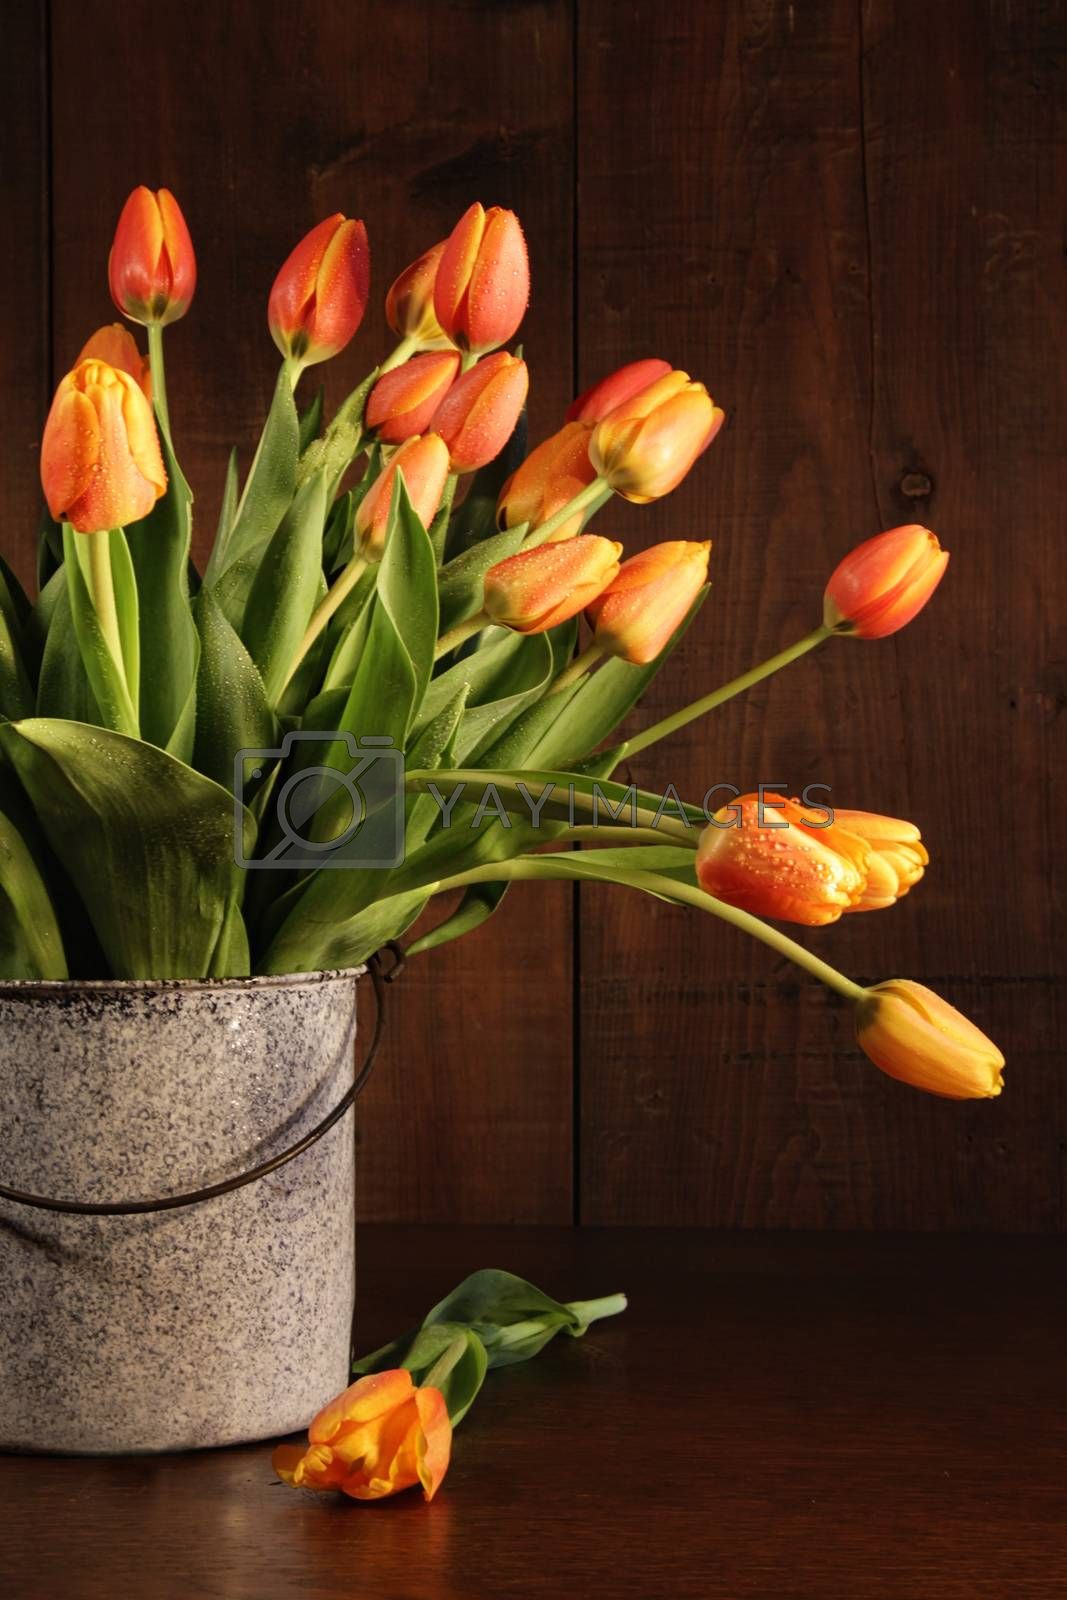 Yellow and orange tulips in old bucket on table